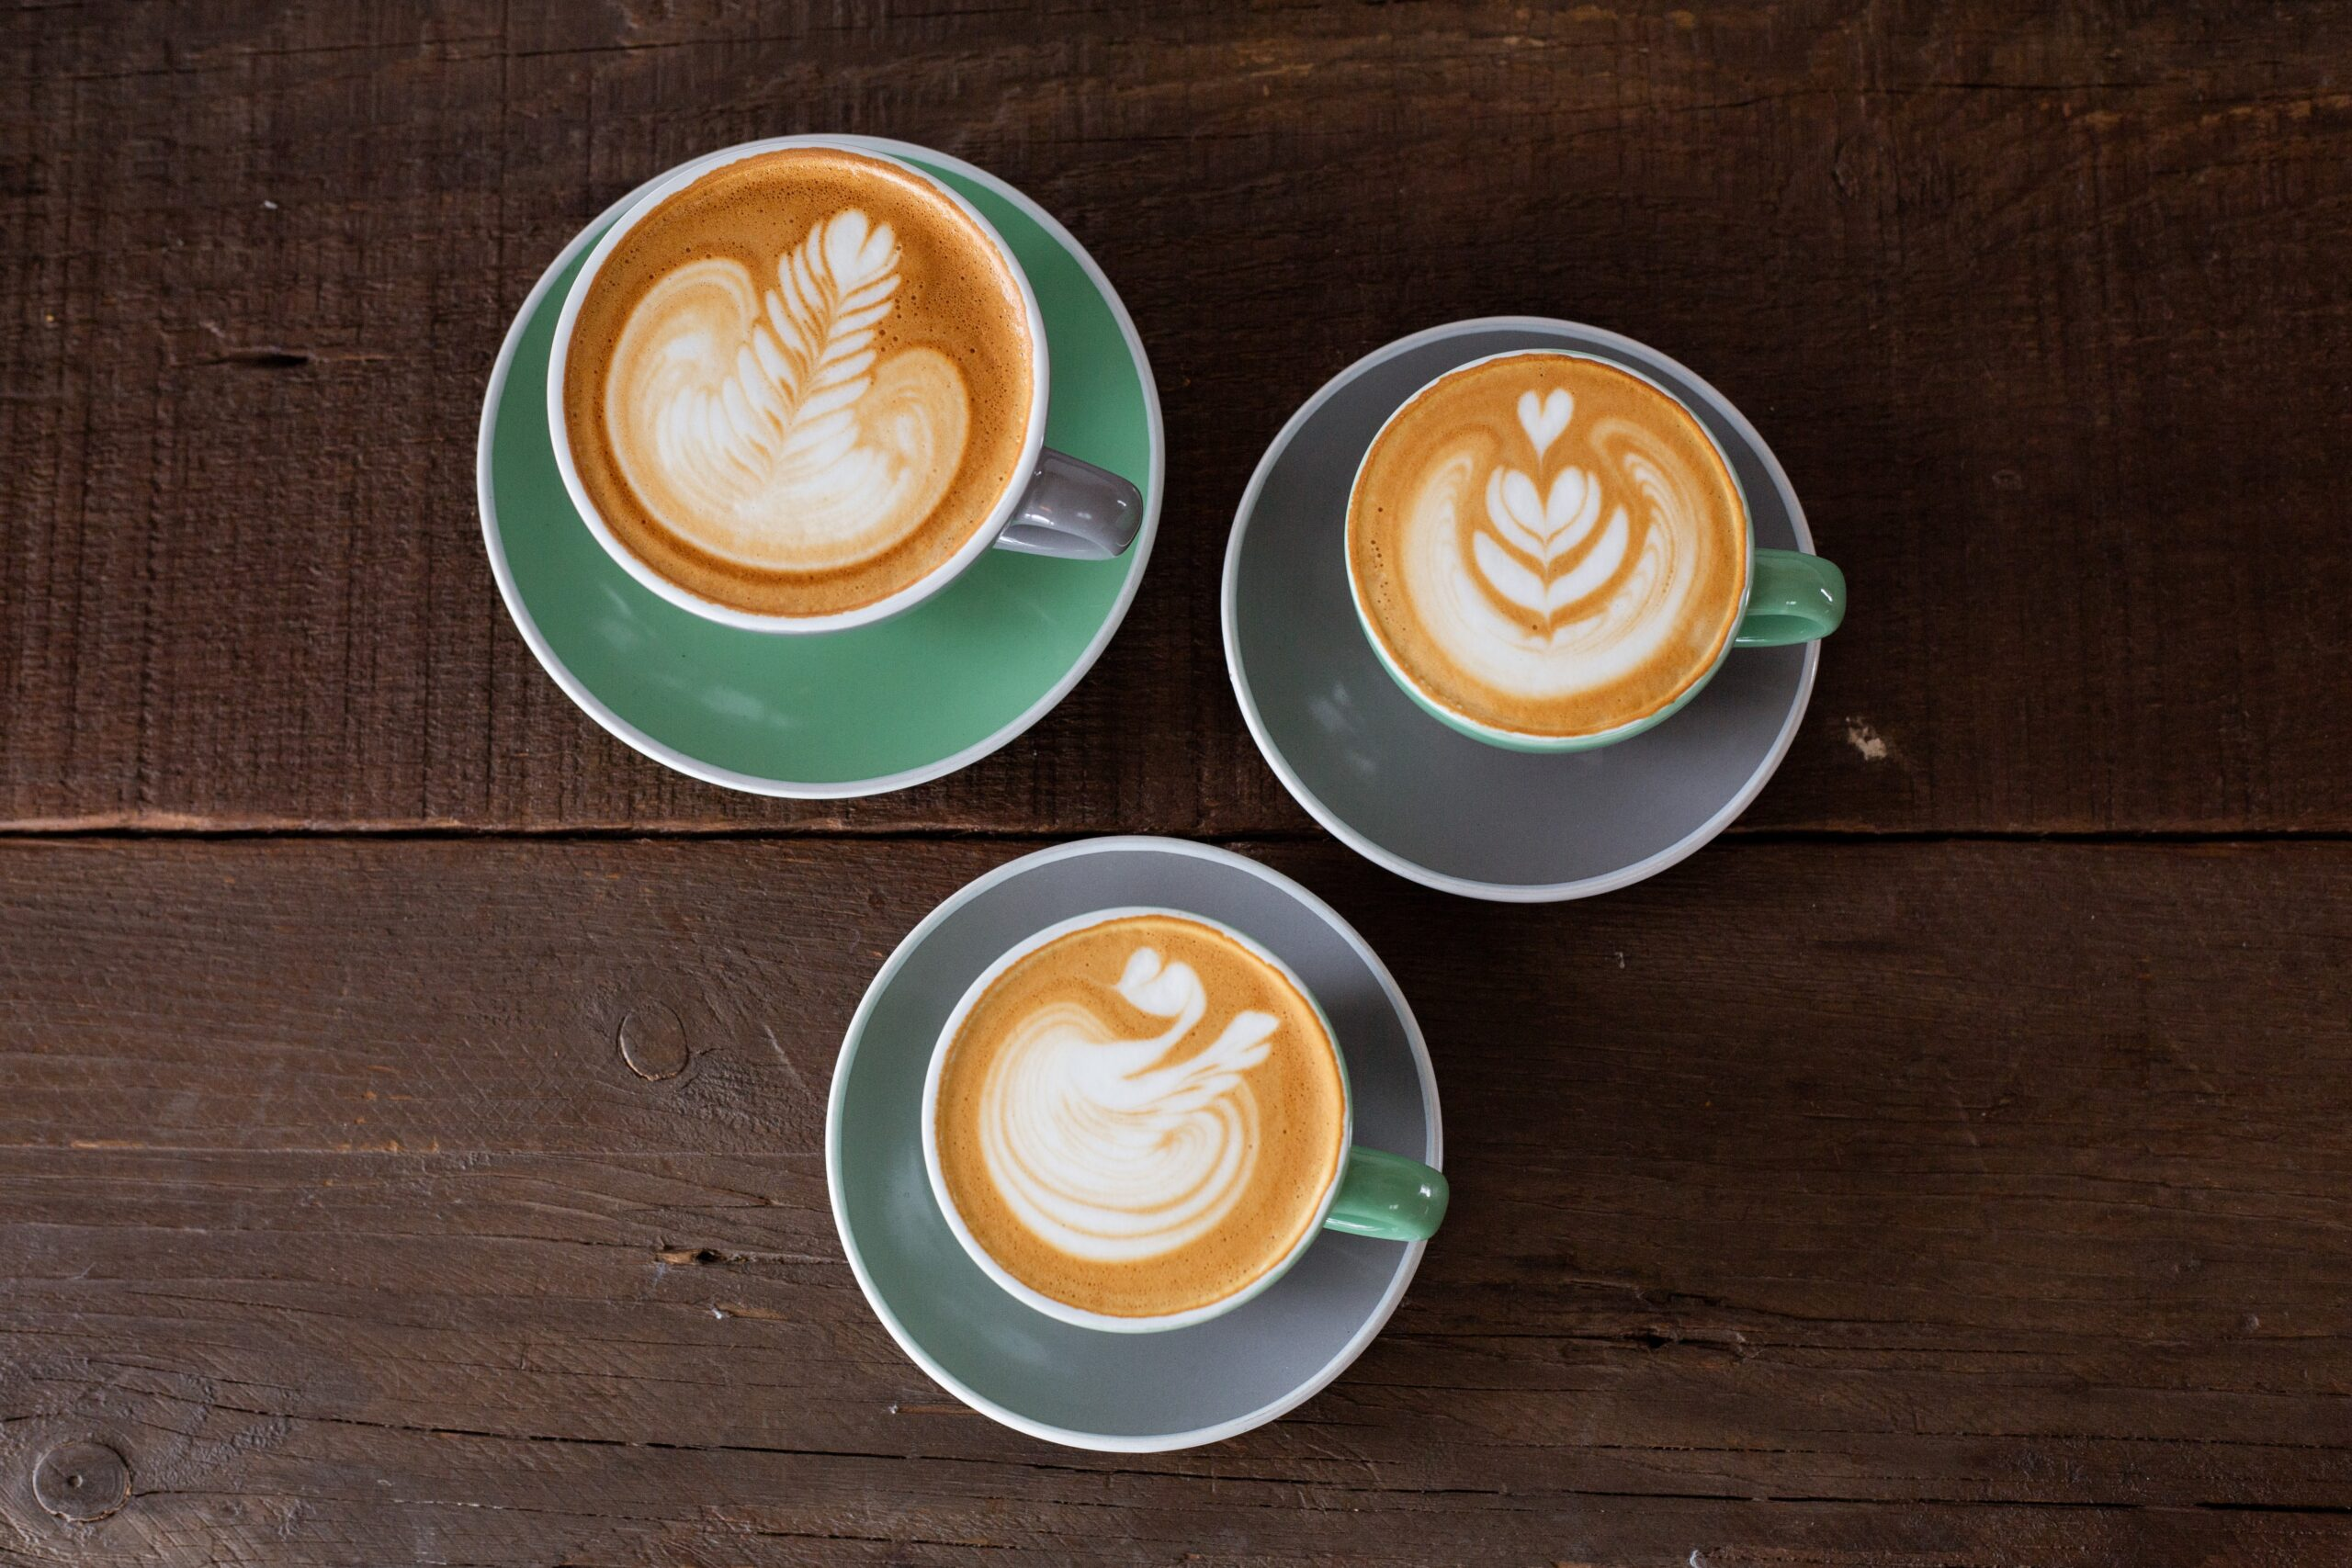 3 cups of latte with art